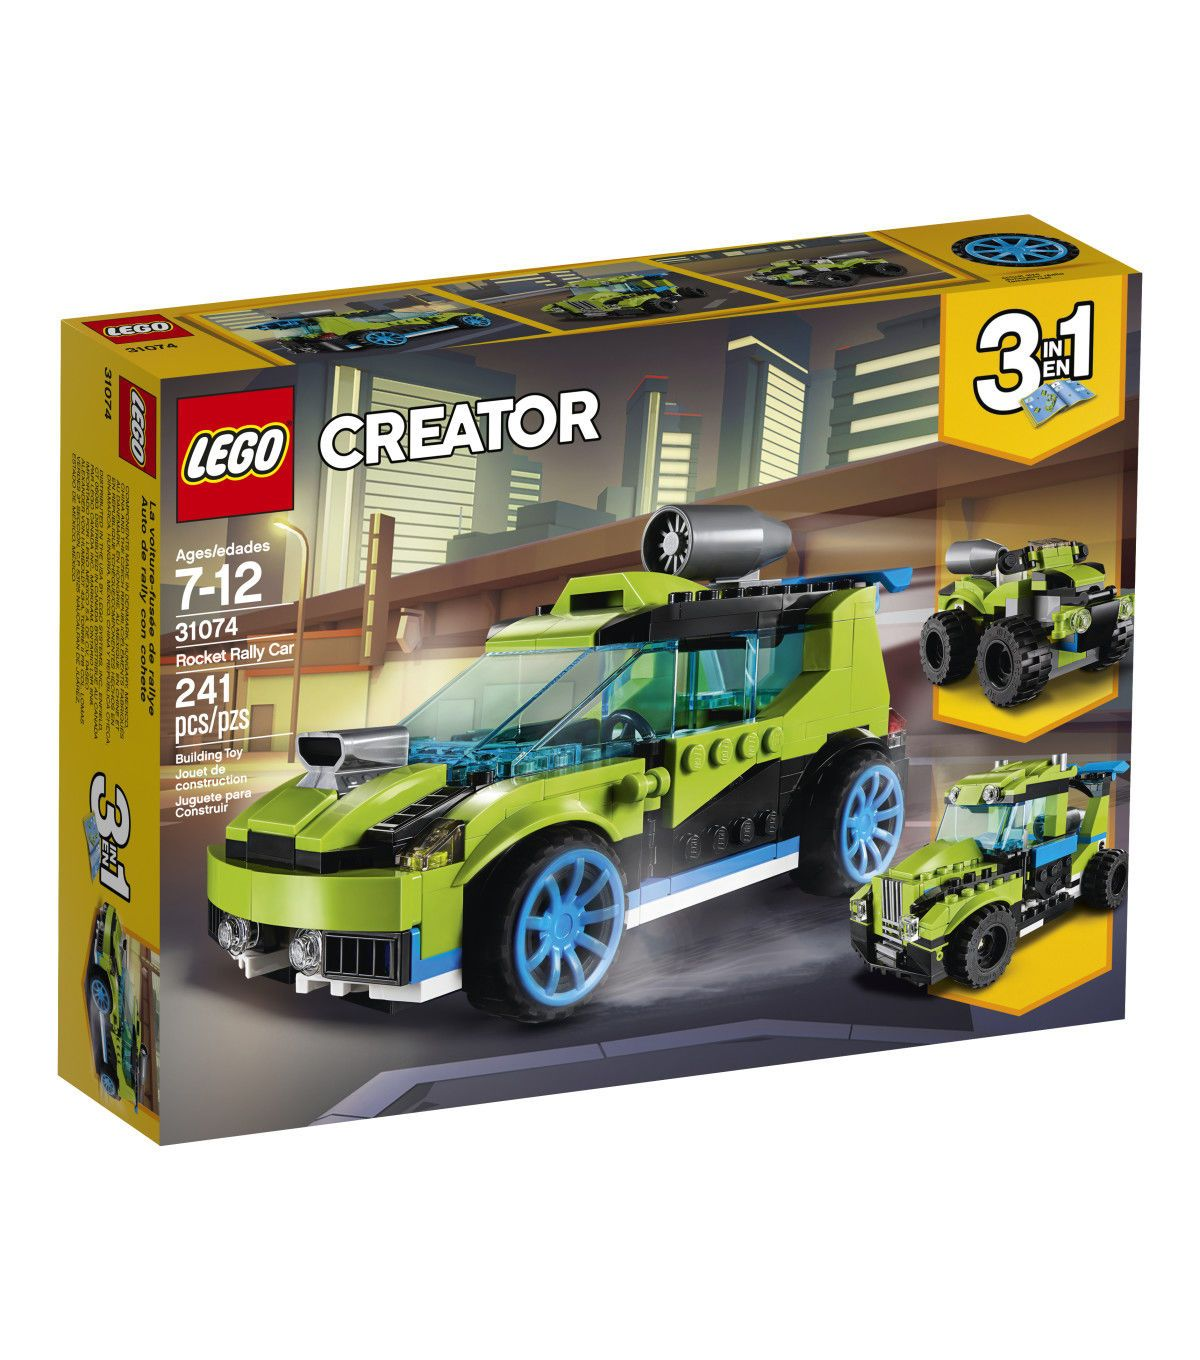 LEGO Creator Rocket Rally Car 31074 in 2019 | Products